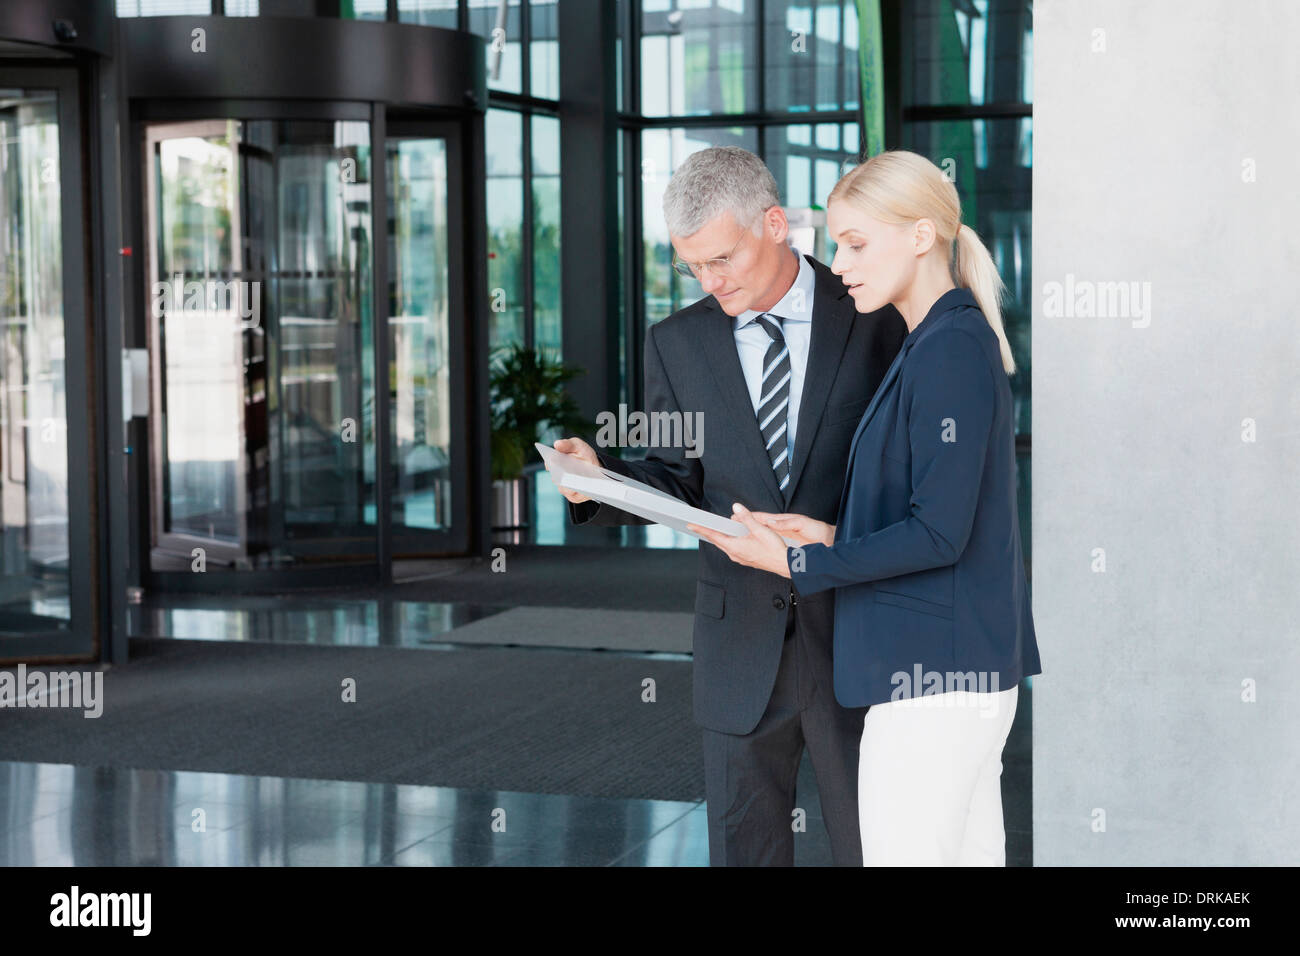 Germany, Business people discussing documents - Stock Image